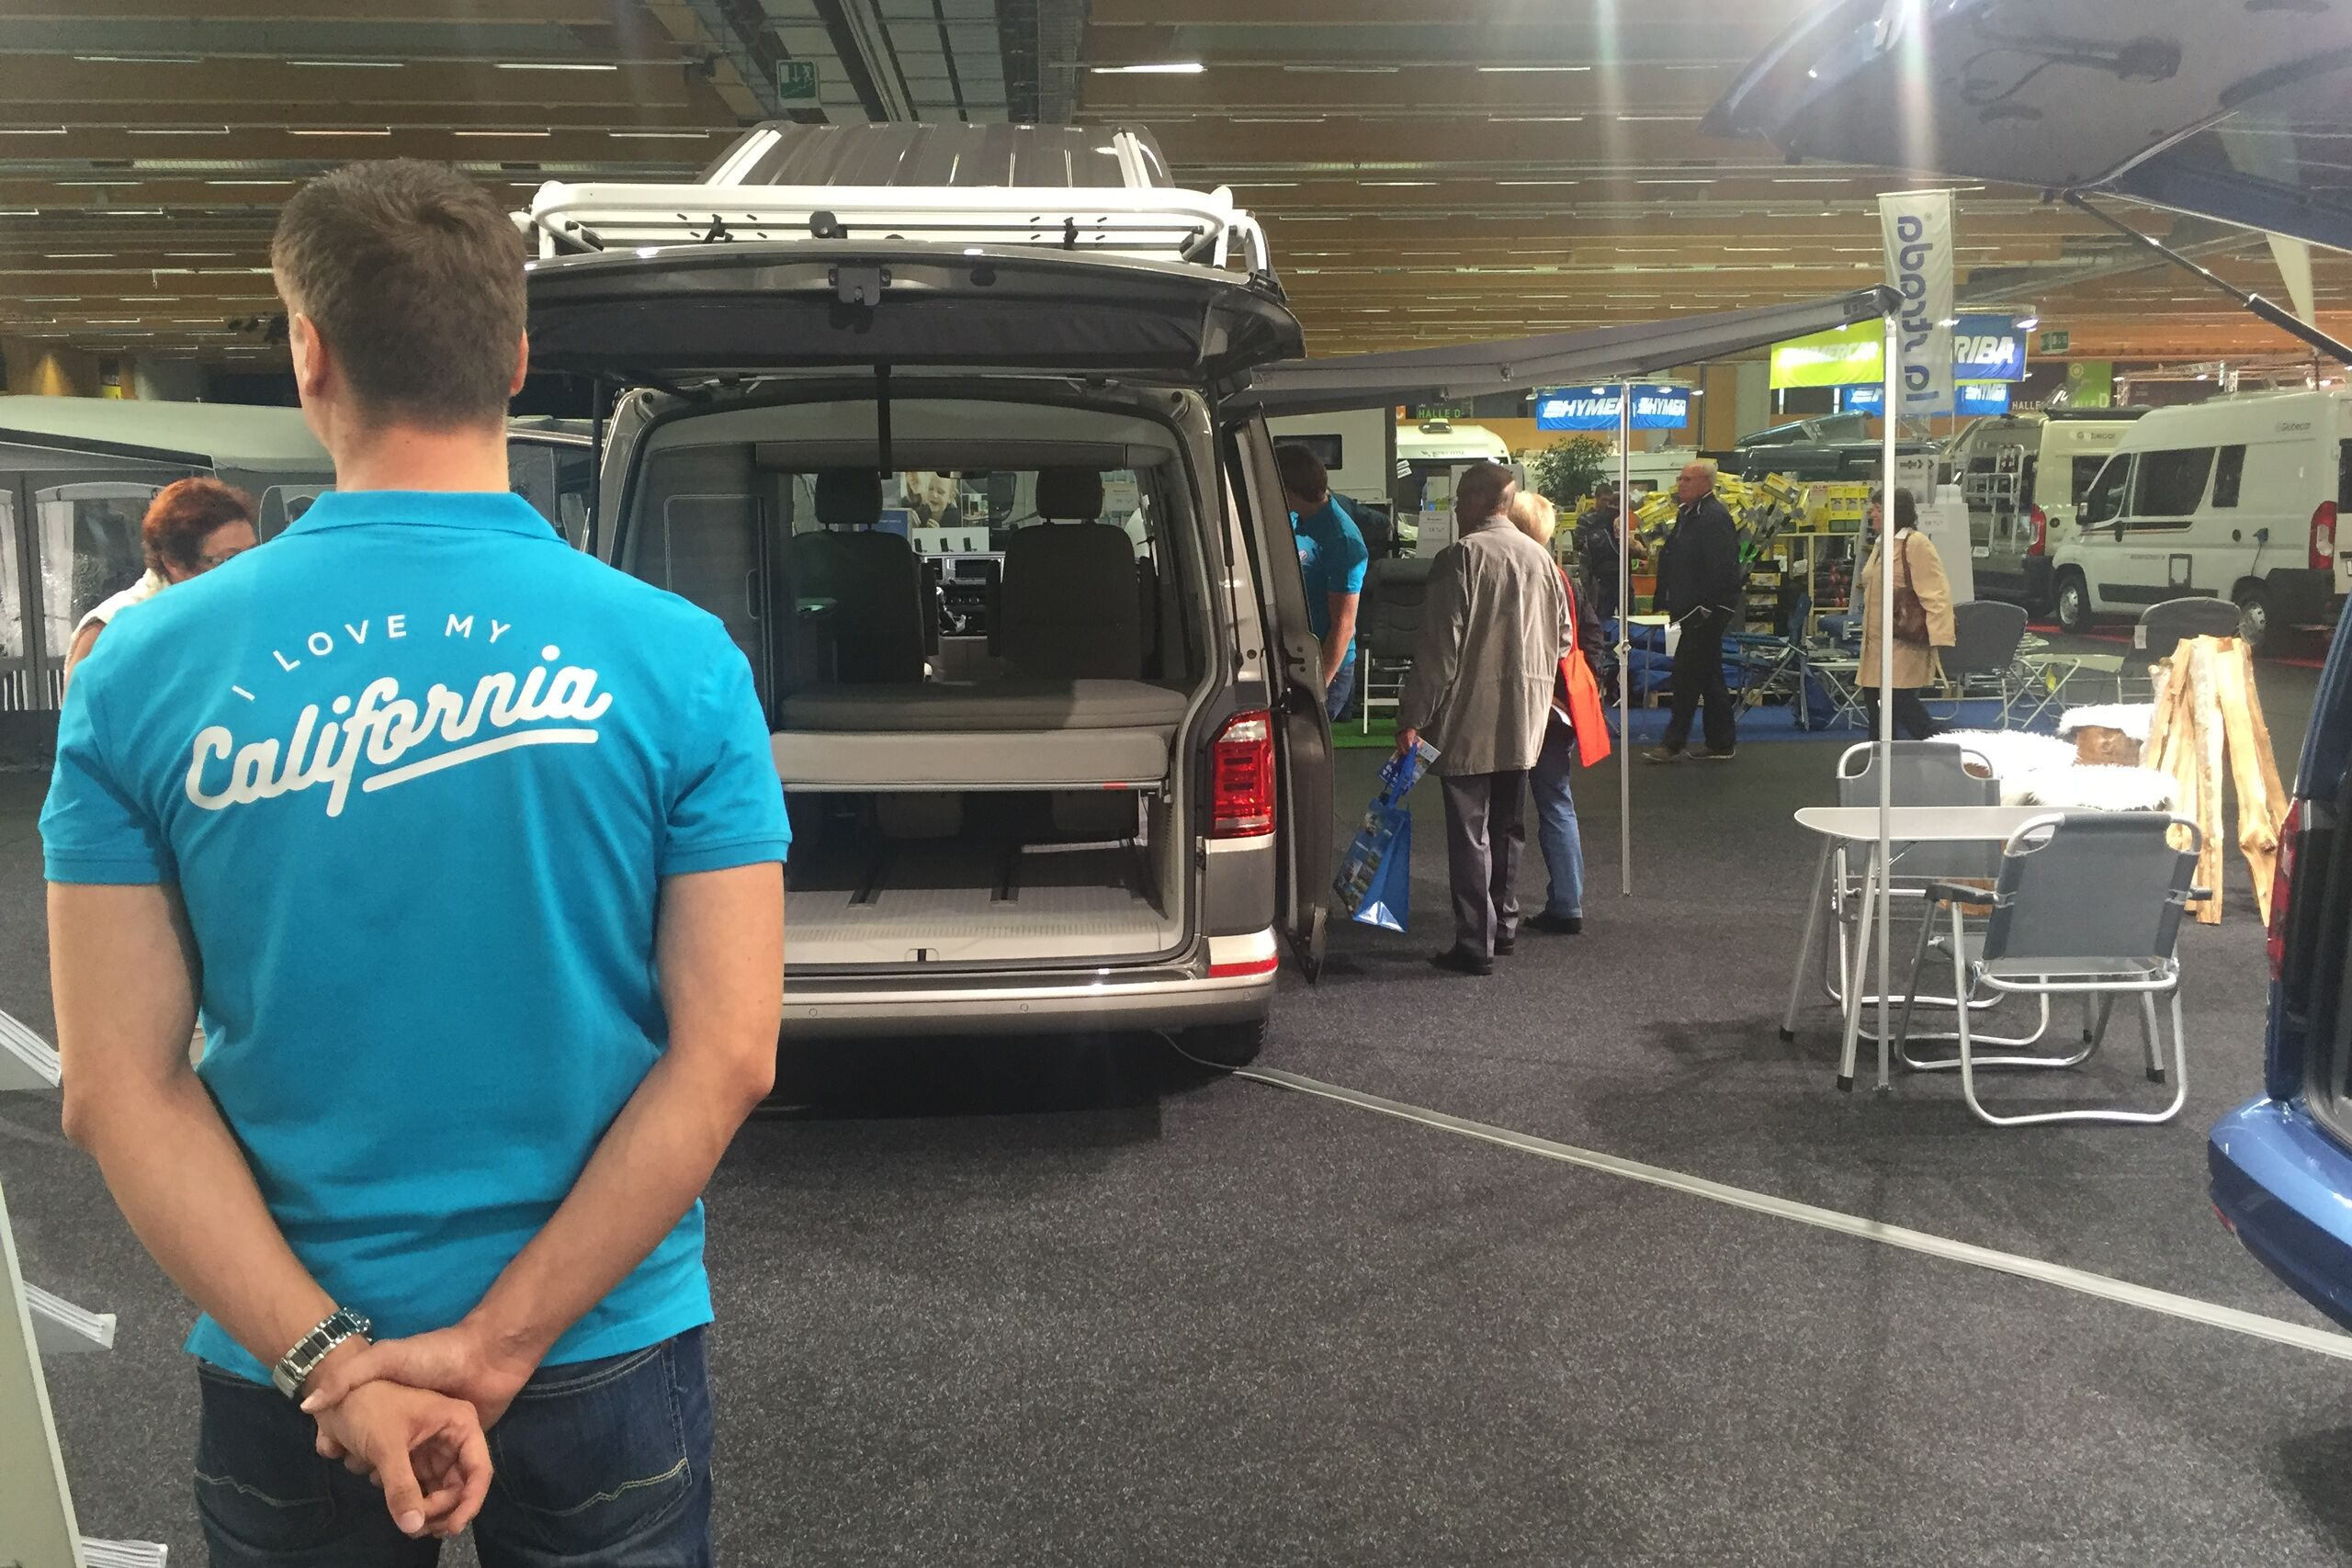 VW Messestand I love my California